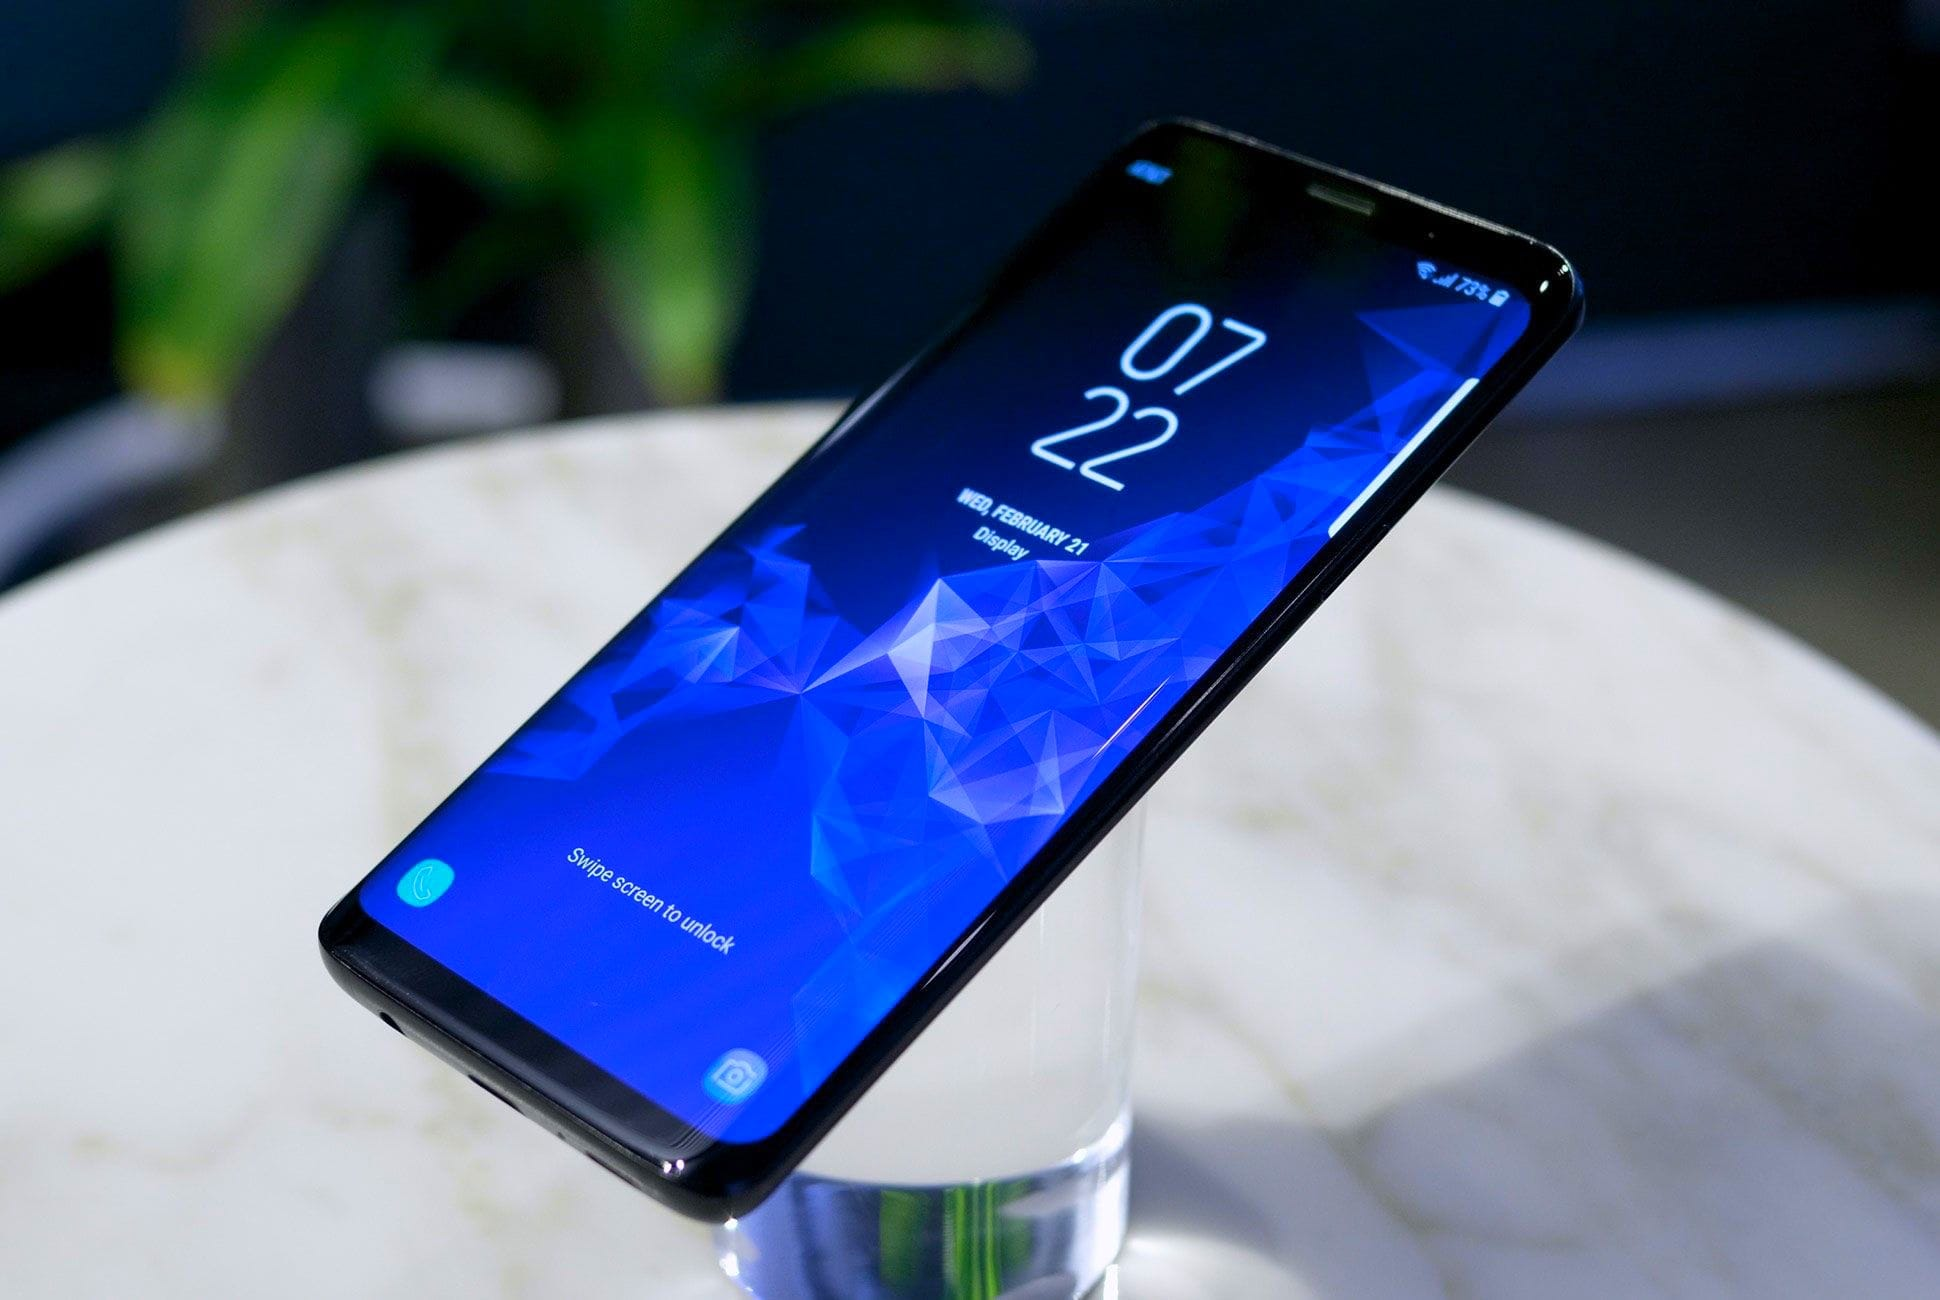 design and display samsung galaxy s9 and s9 the - HD 1940×1300